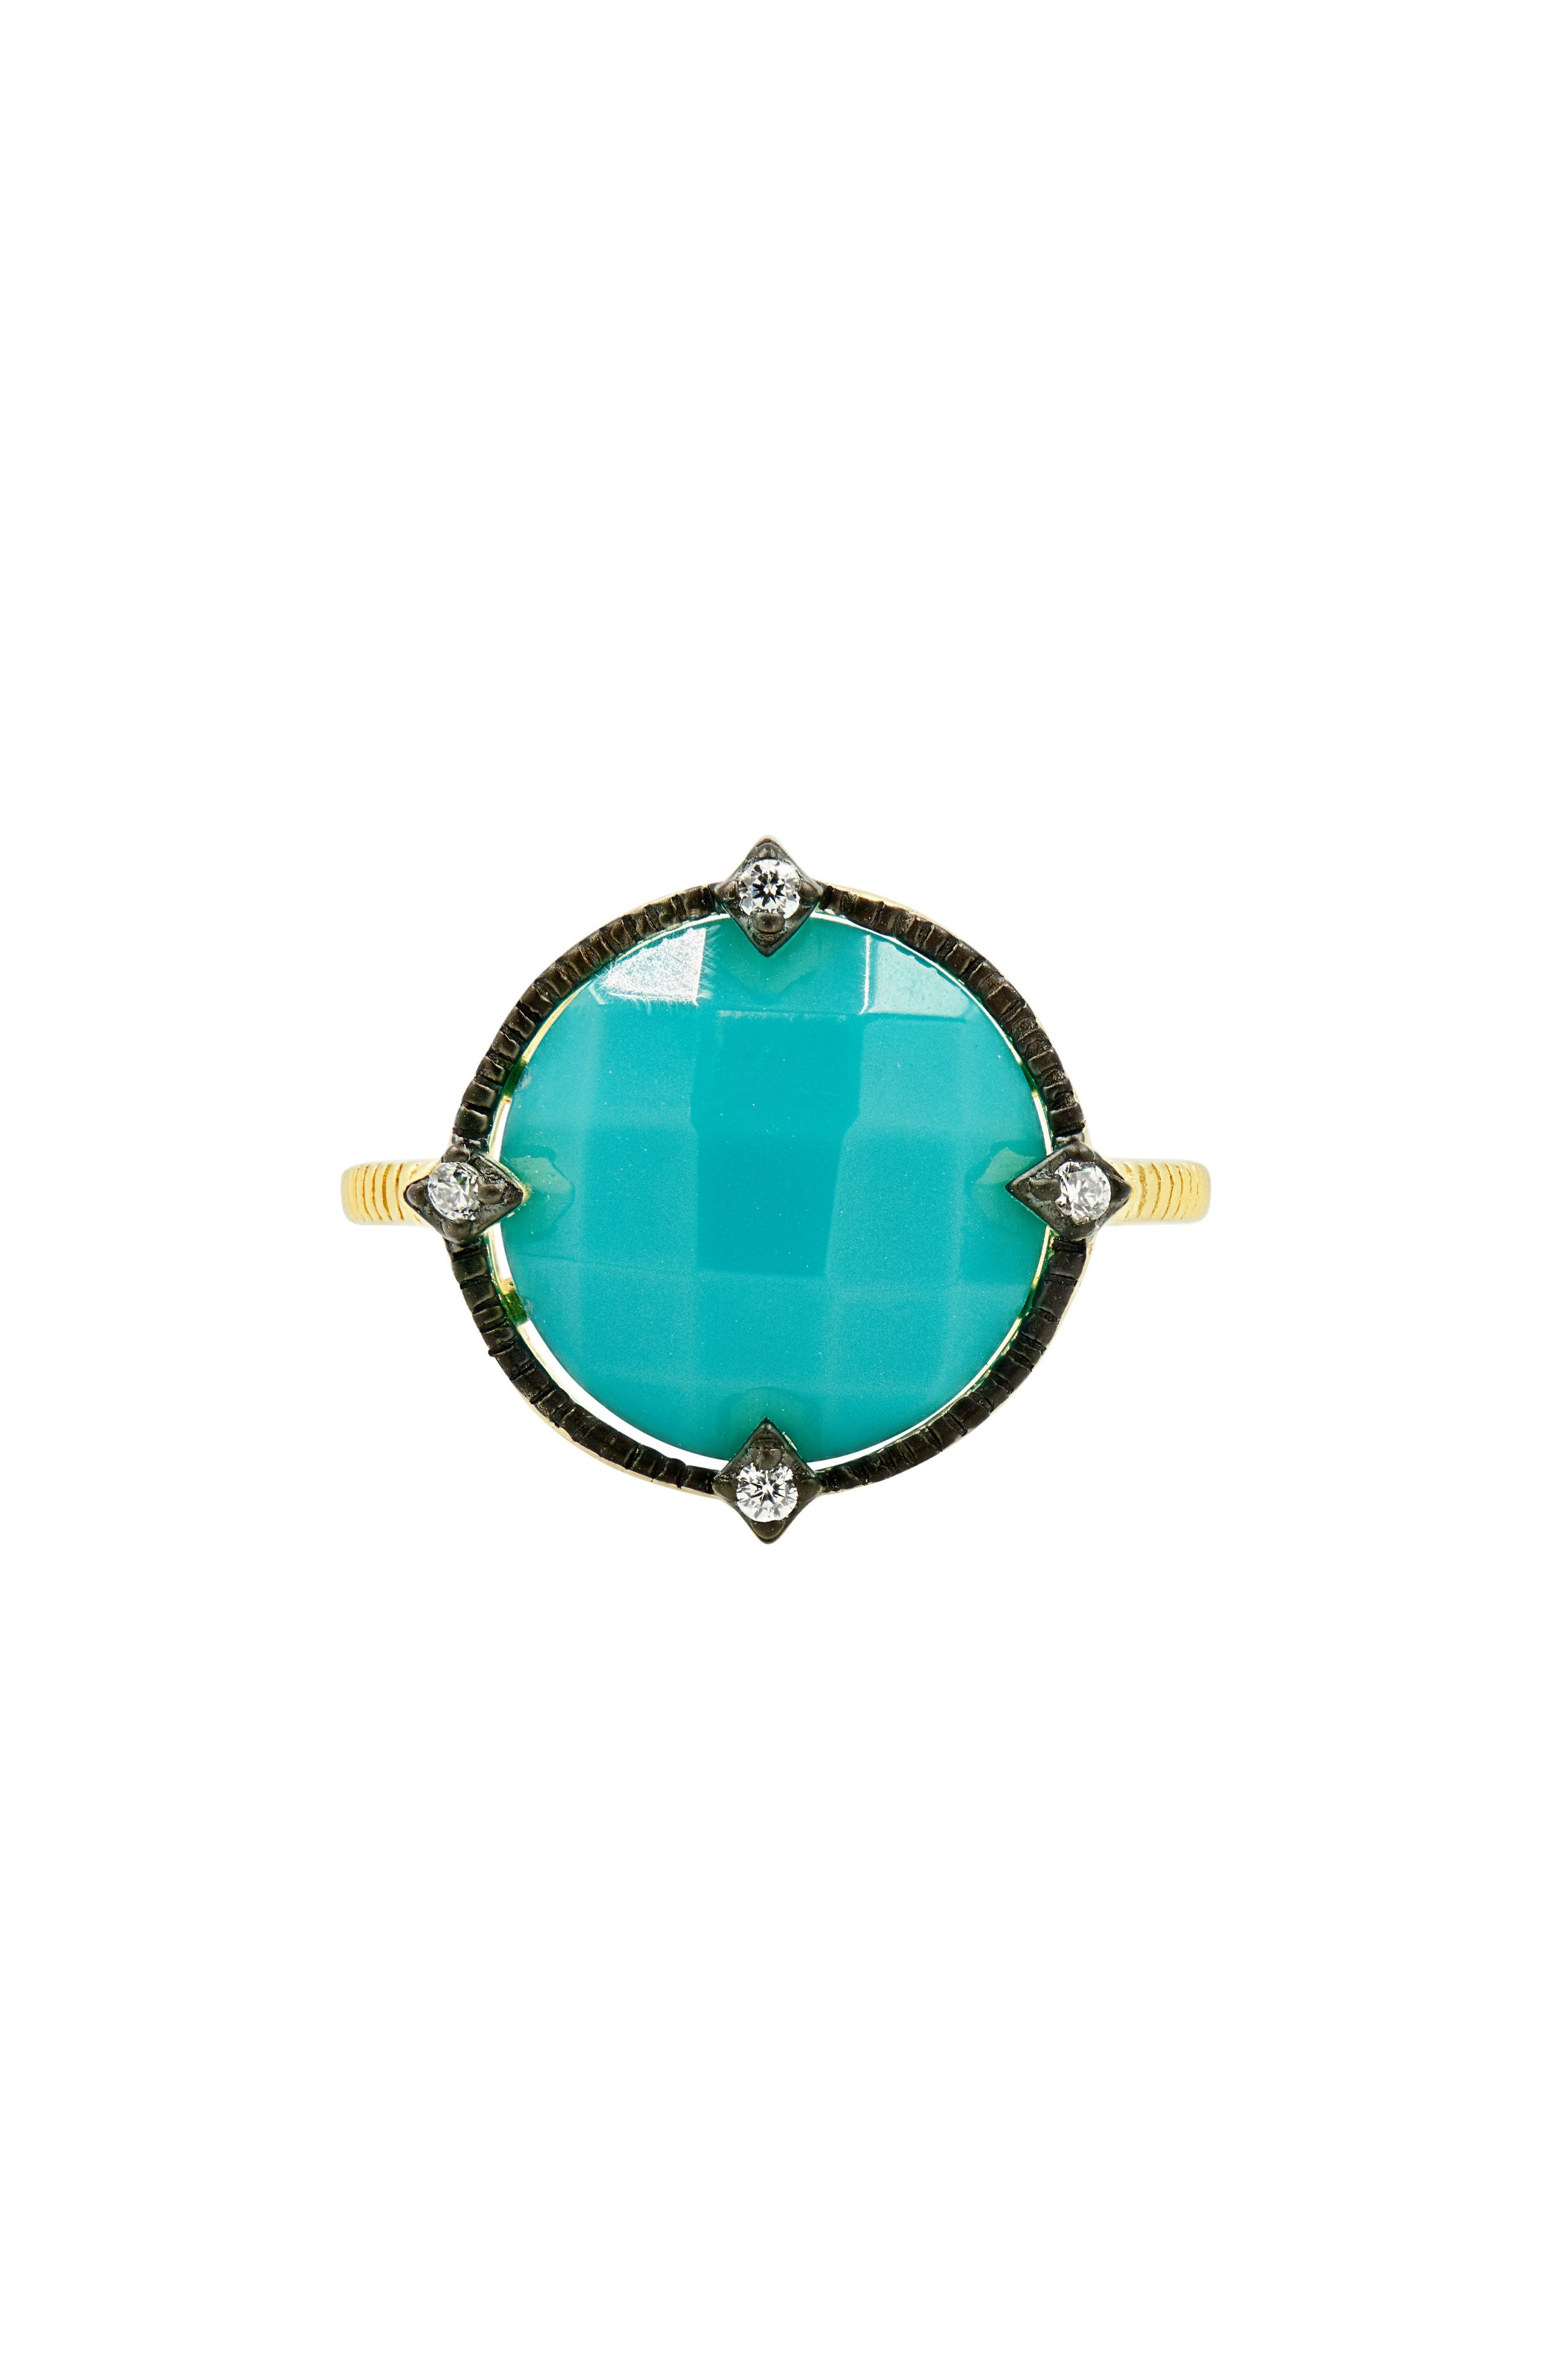 FREIDA ROTHMAN Color Theory Round Cocktail Ring - Turquoise, Size 7 in Gold/ Black/ Turquoise